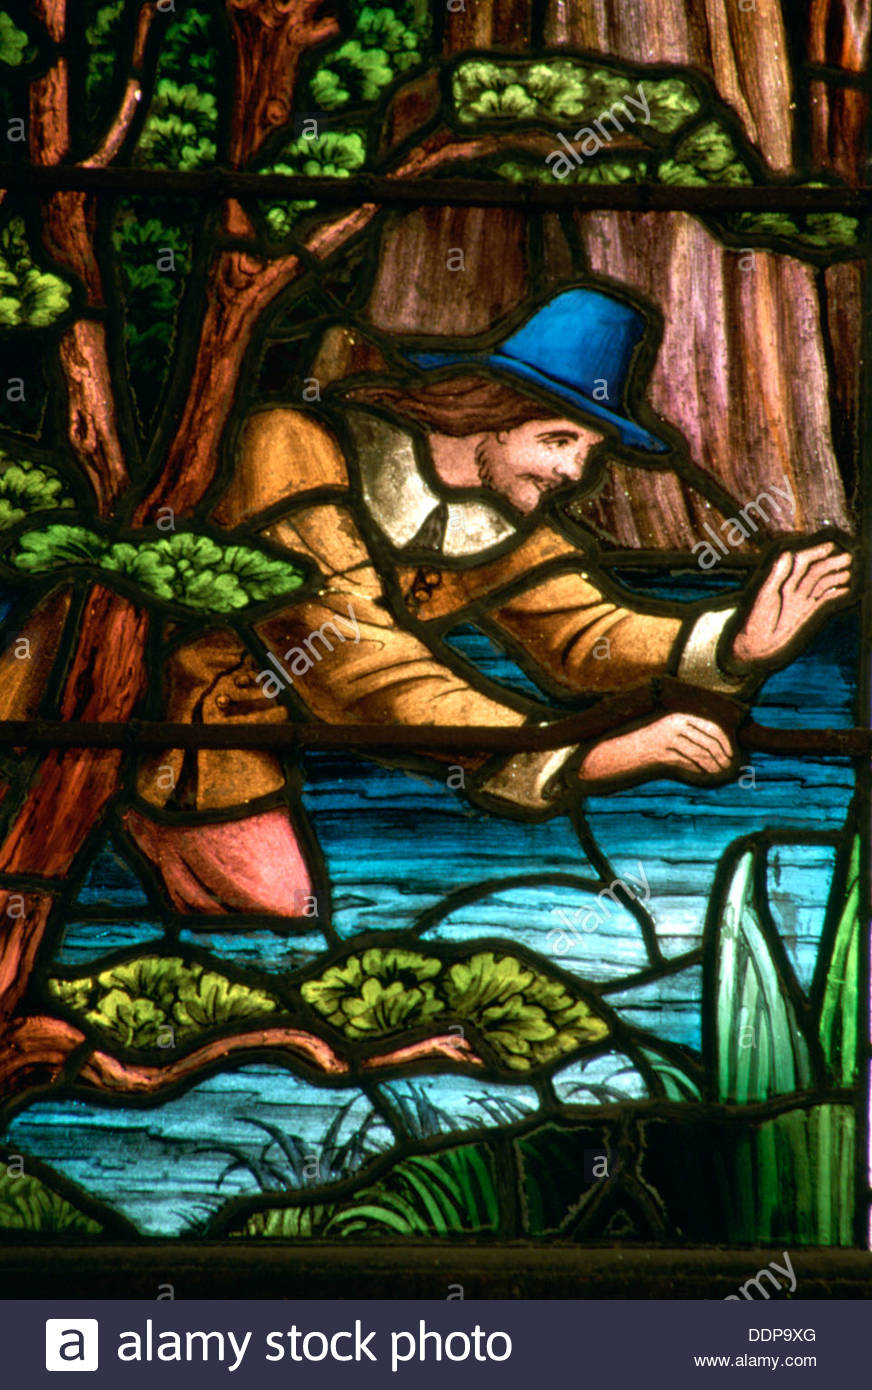 John Bunyan stained glass window (detail), Memorial Hall, Elstow, Bedfordshire. Artist: Derek Anson - Stock Image